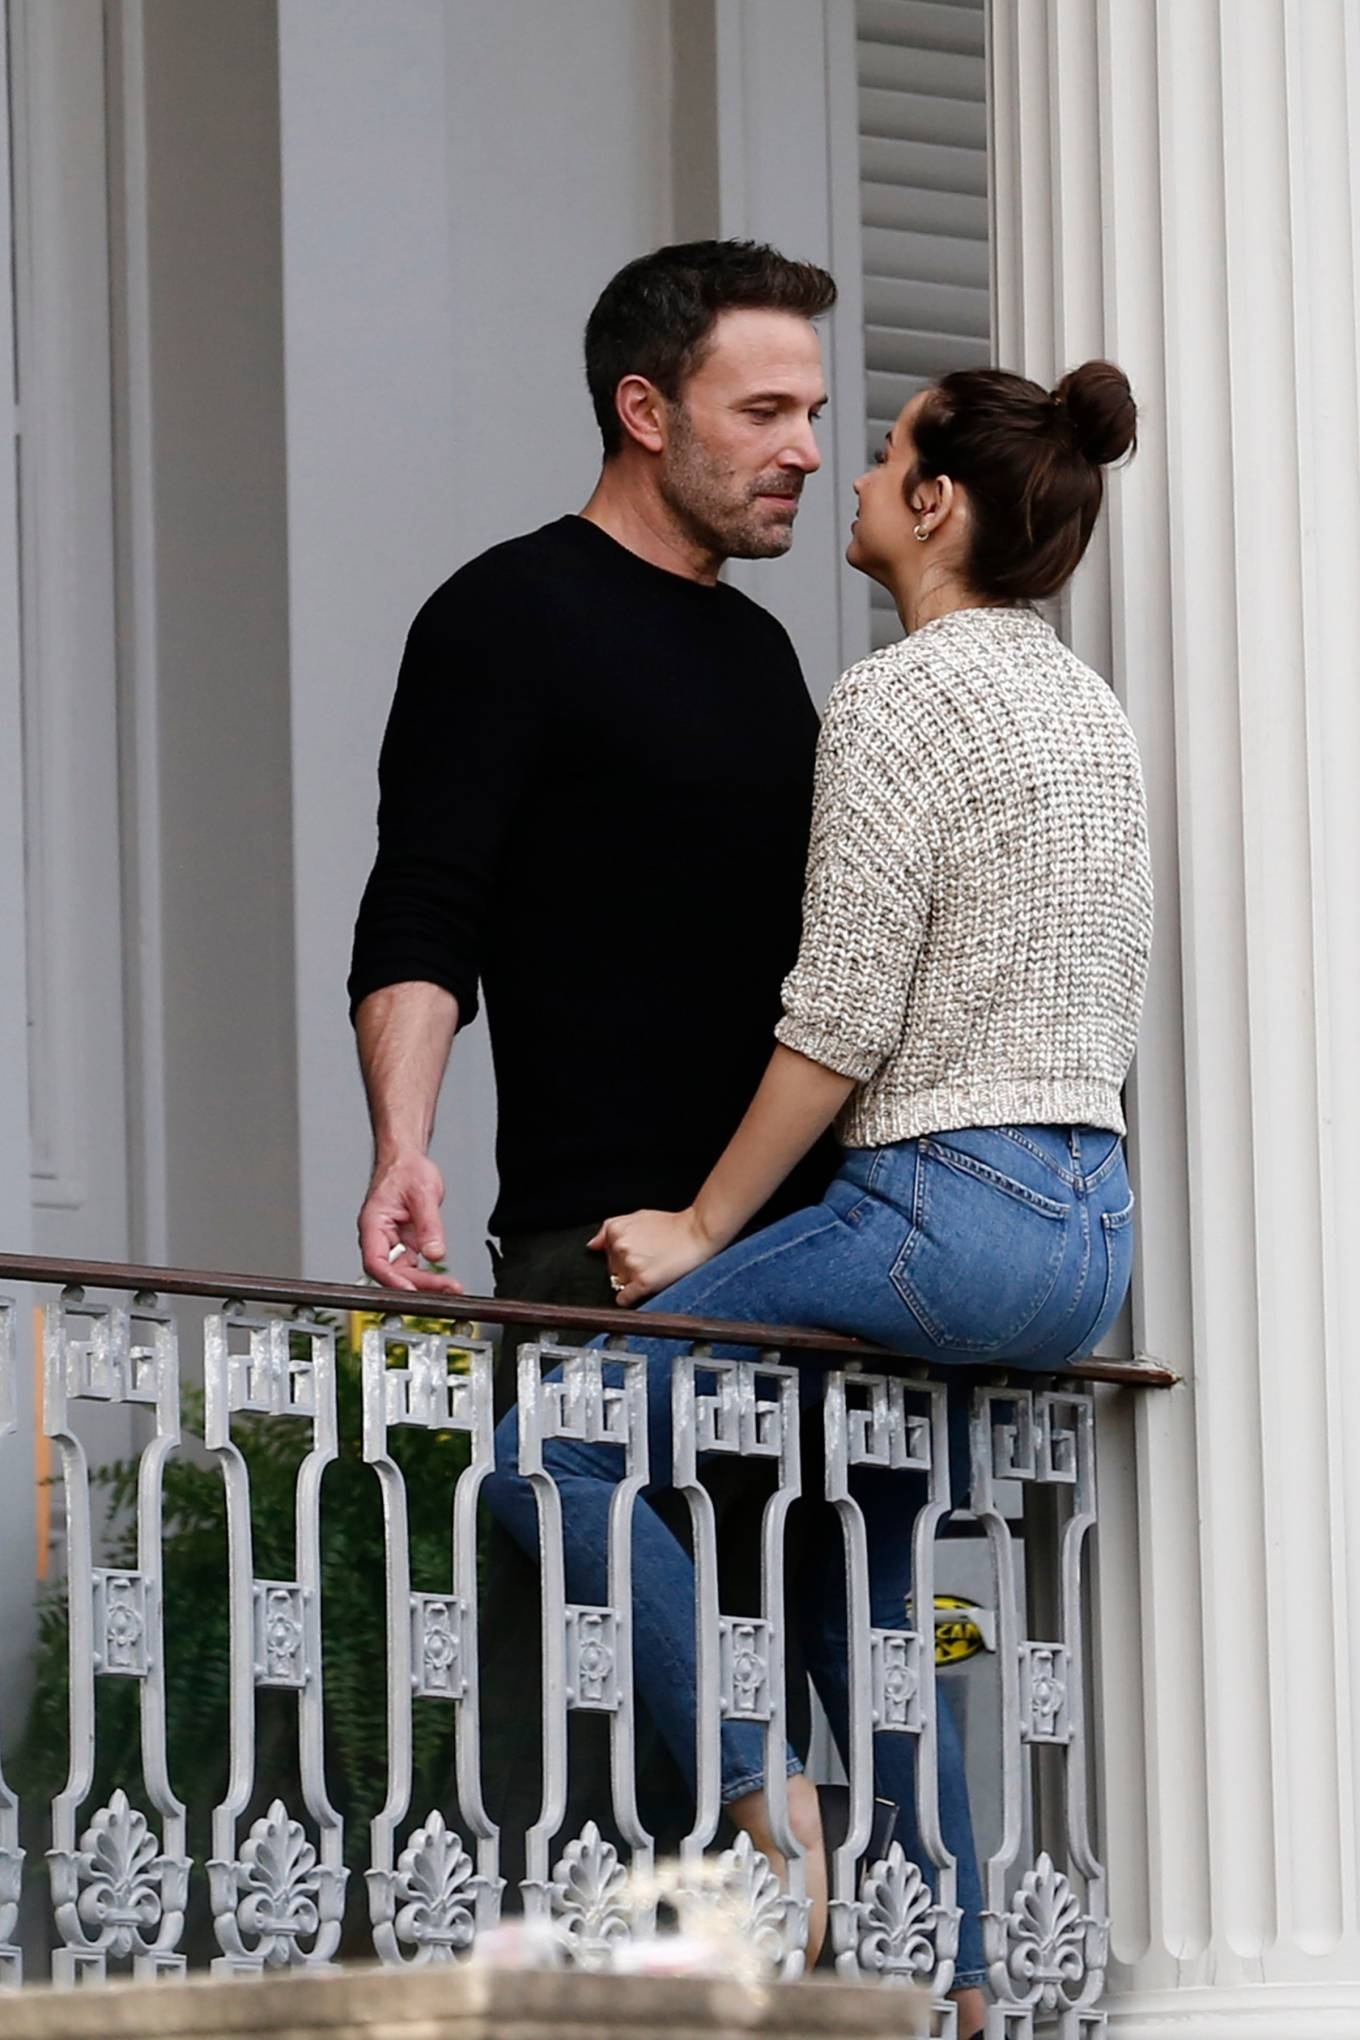 Ana De Armas and Ben Affleck - Spotted on a balcony in New Orleans